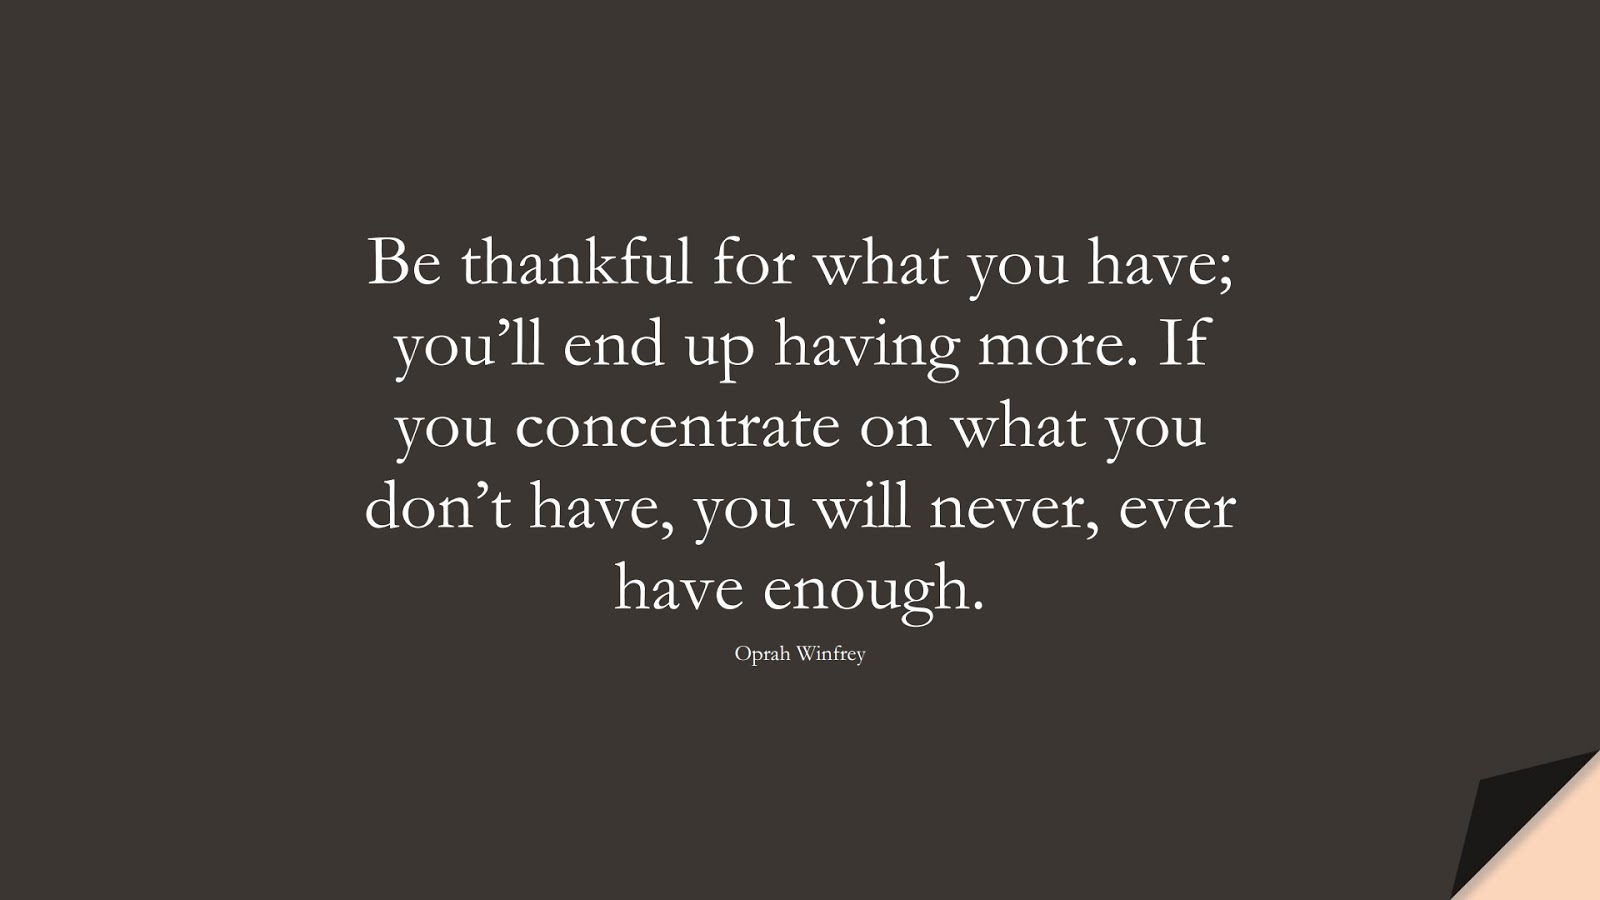 Be thankful for what you have; you'll end up having more. If you concentrate on what you don't have, you will never, ever have enough. (Oprah Winfrey);  #FamousQuotes